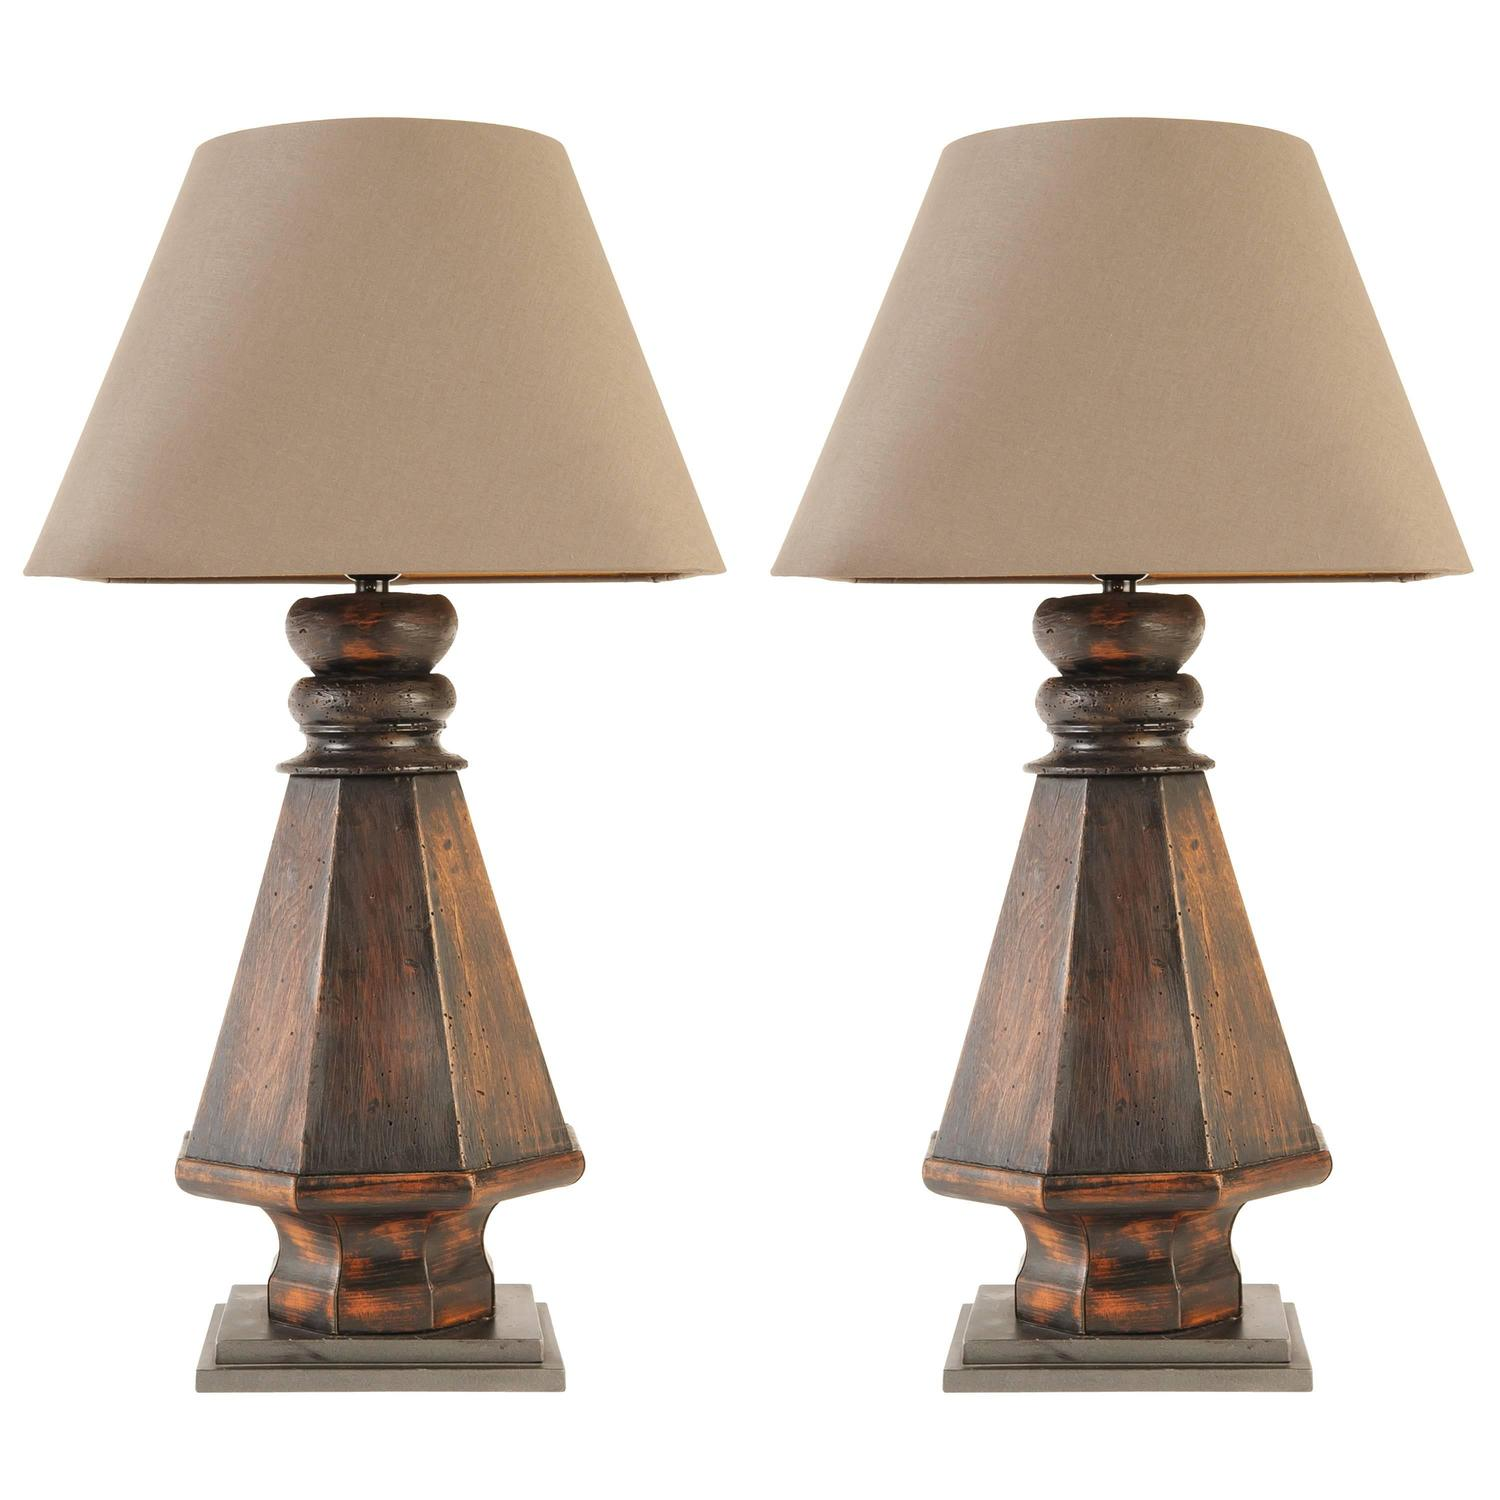 pair of wood base lamps with linen shade for sale at 1stdibs. Black Bedroom Furniture Sets. Home Design Ideas